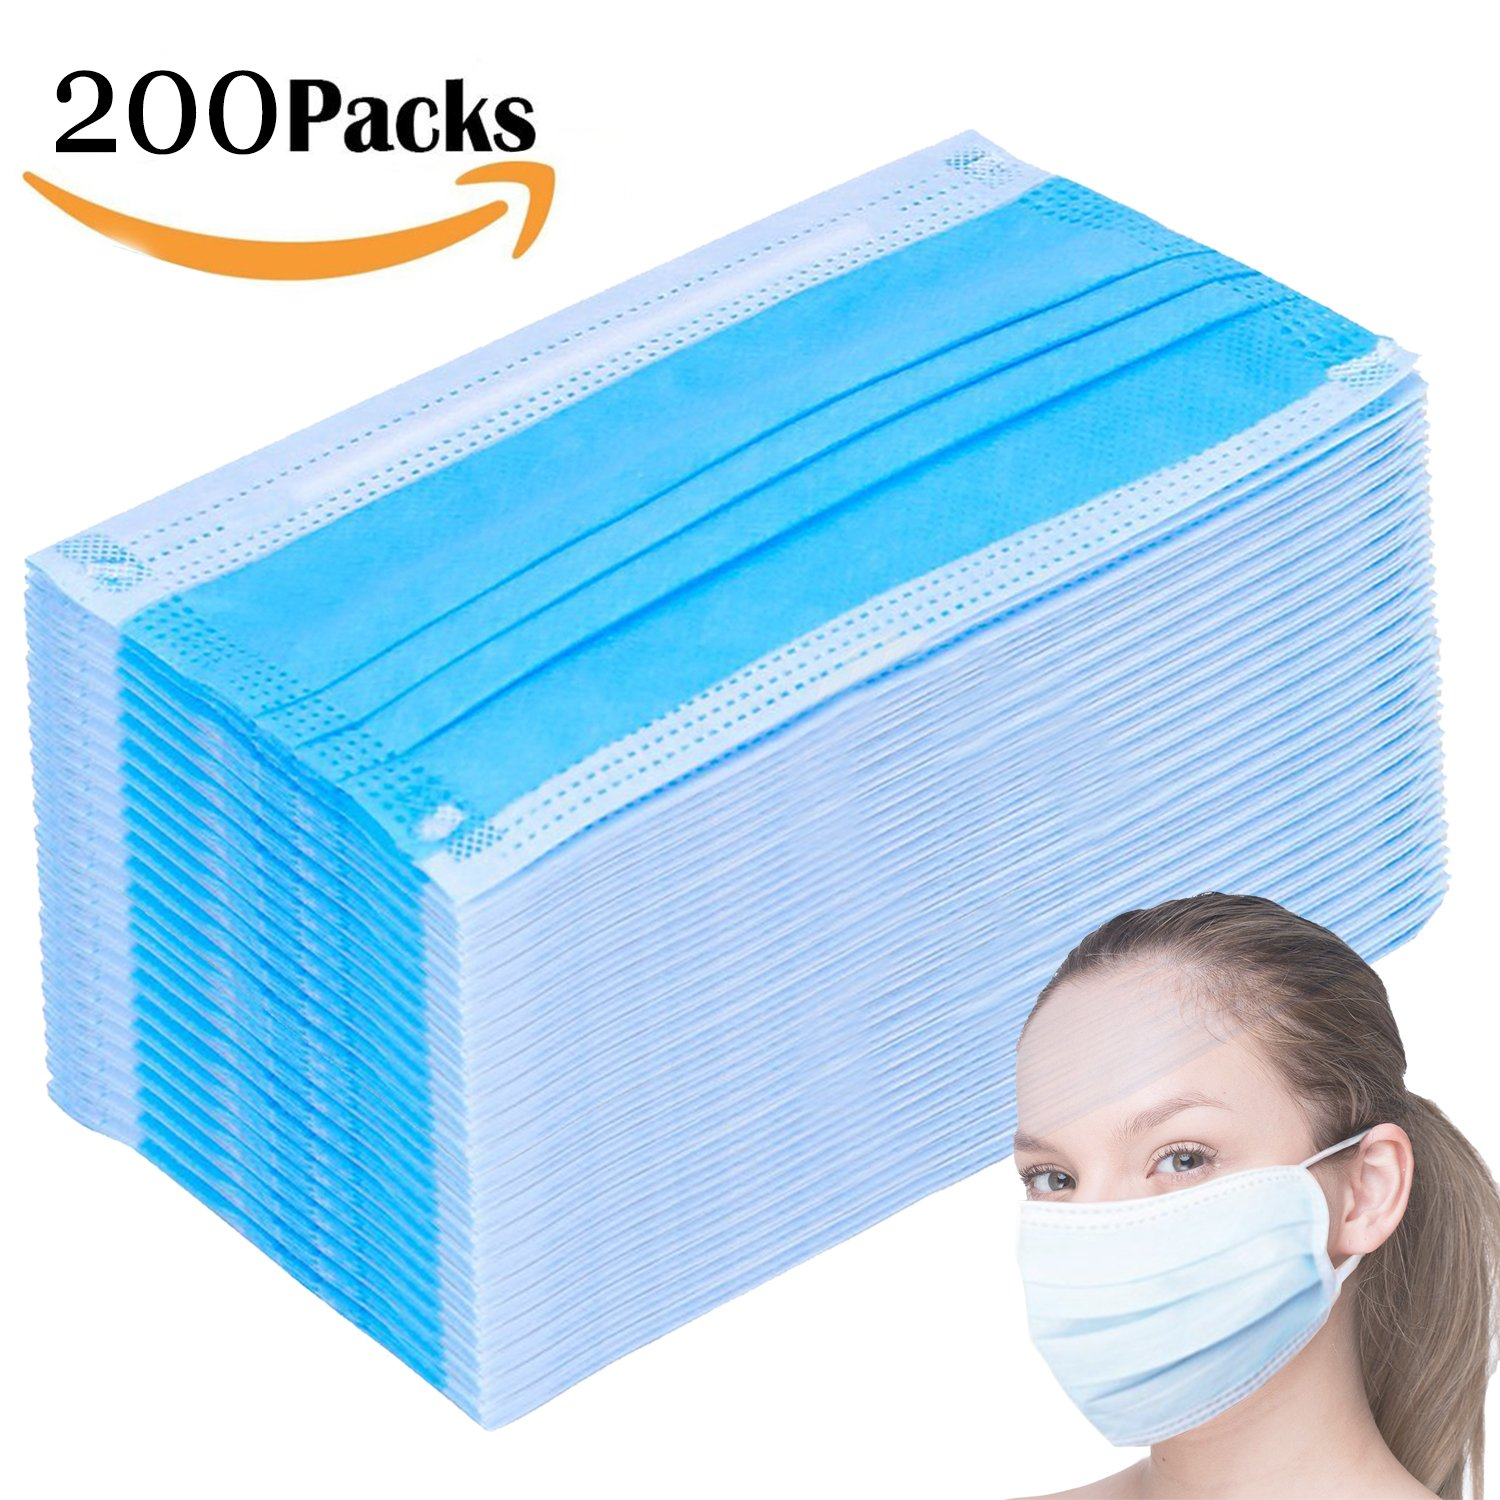 200 Count 3 Ply Filter Mask Commercial Dental Surgical Medical Disposable Earloop Face Masks